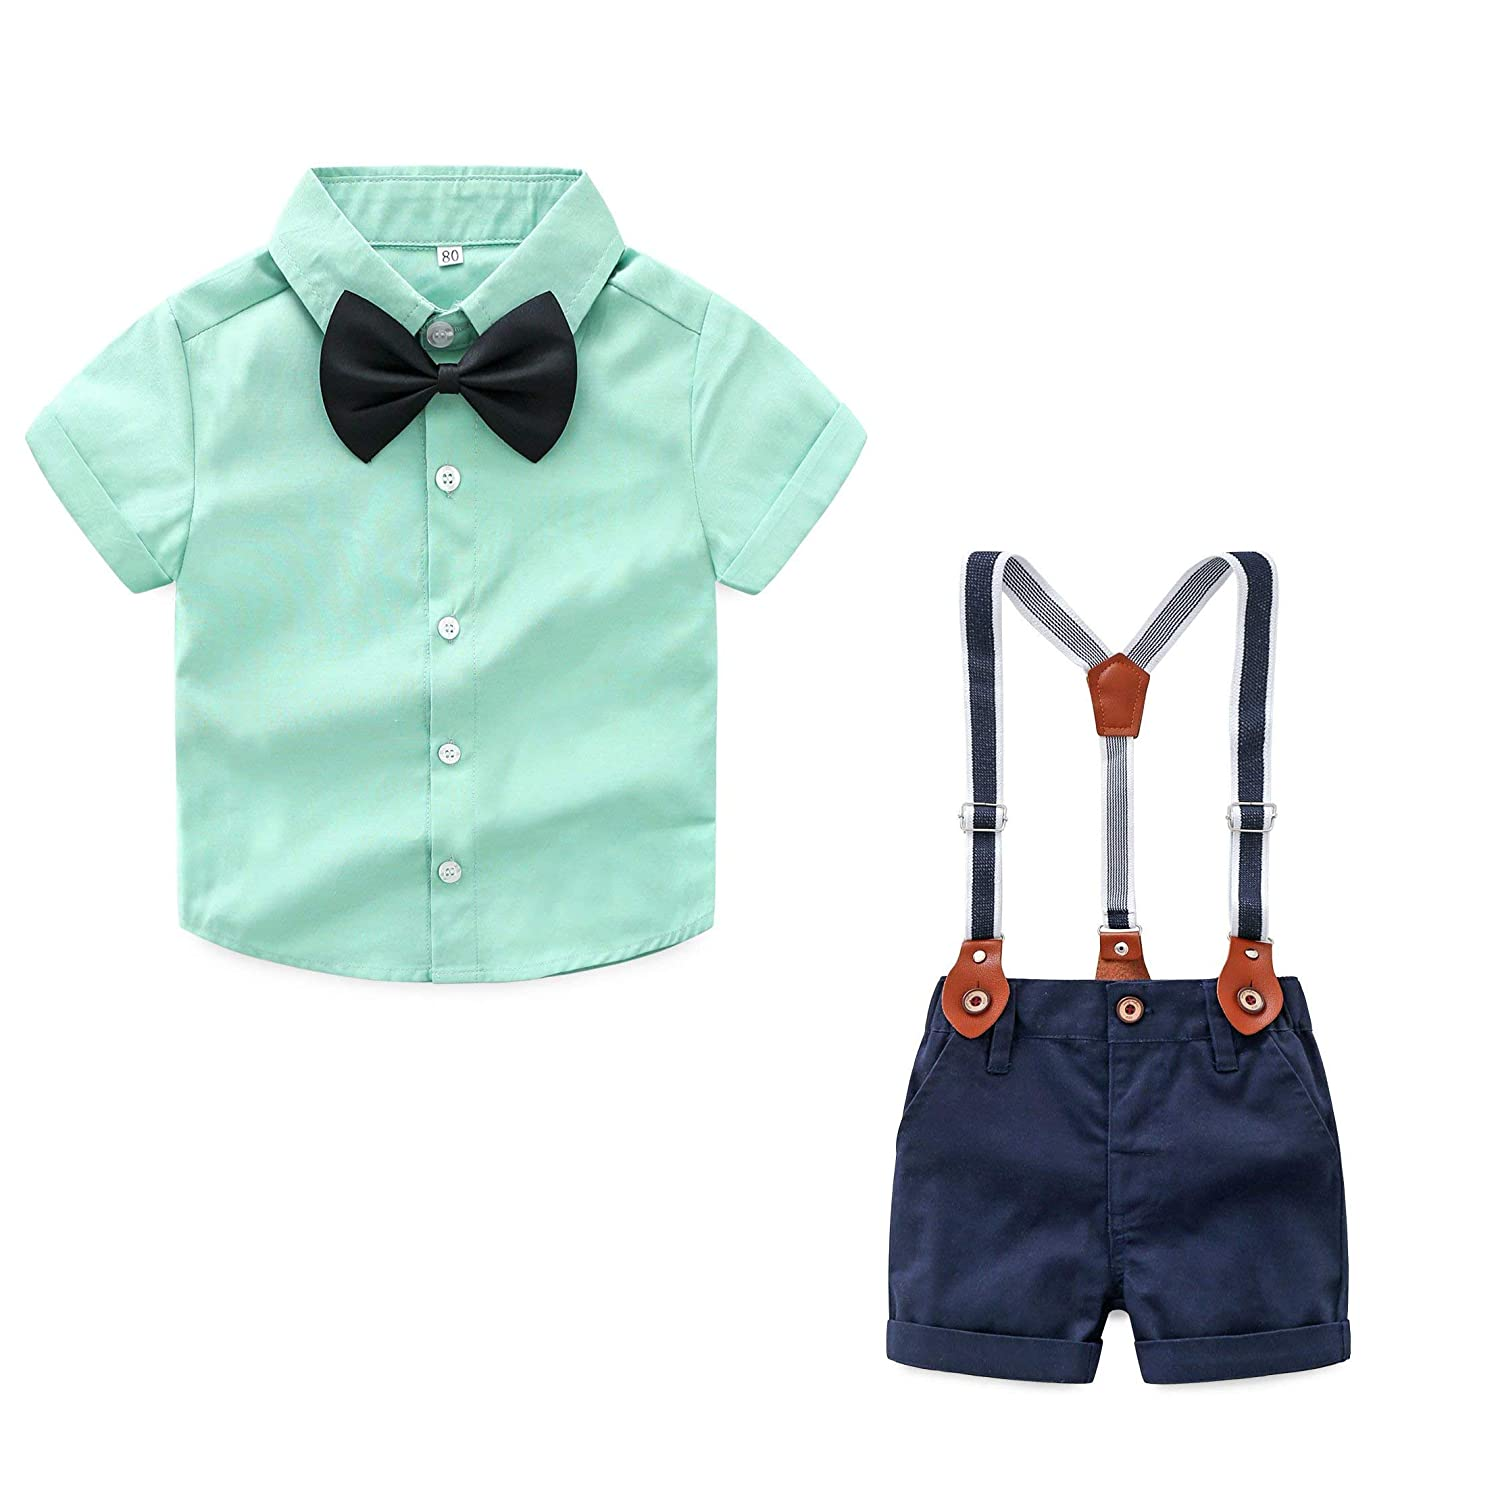 JIANLANPTT Baby Boys Formal Shirt+Suspender Shorts Bowtie Toddler Gentlemant Set